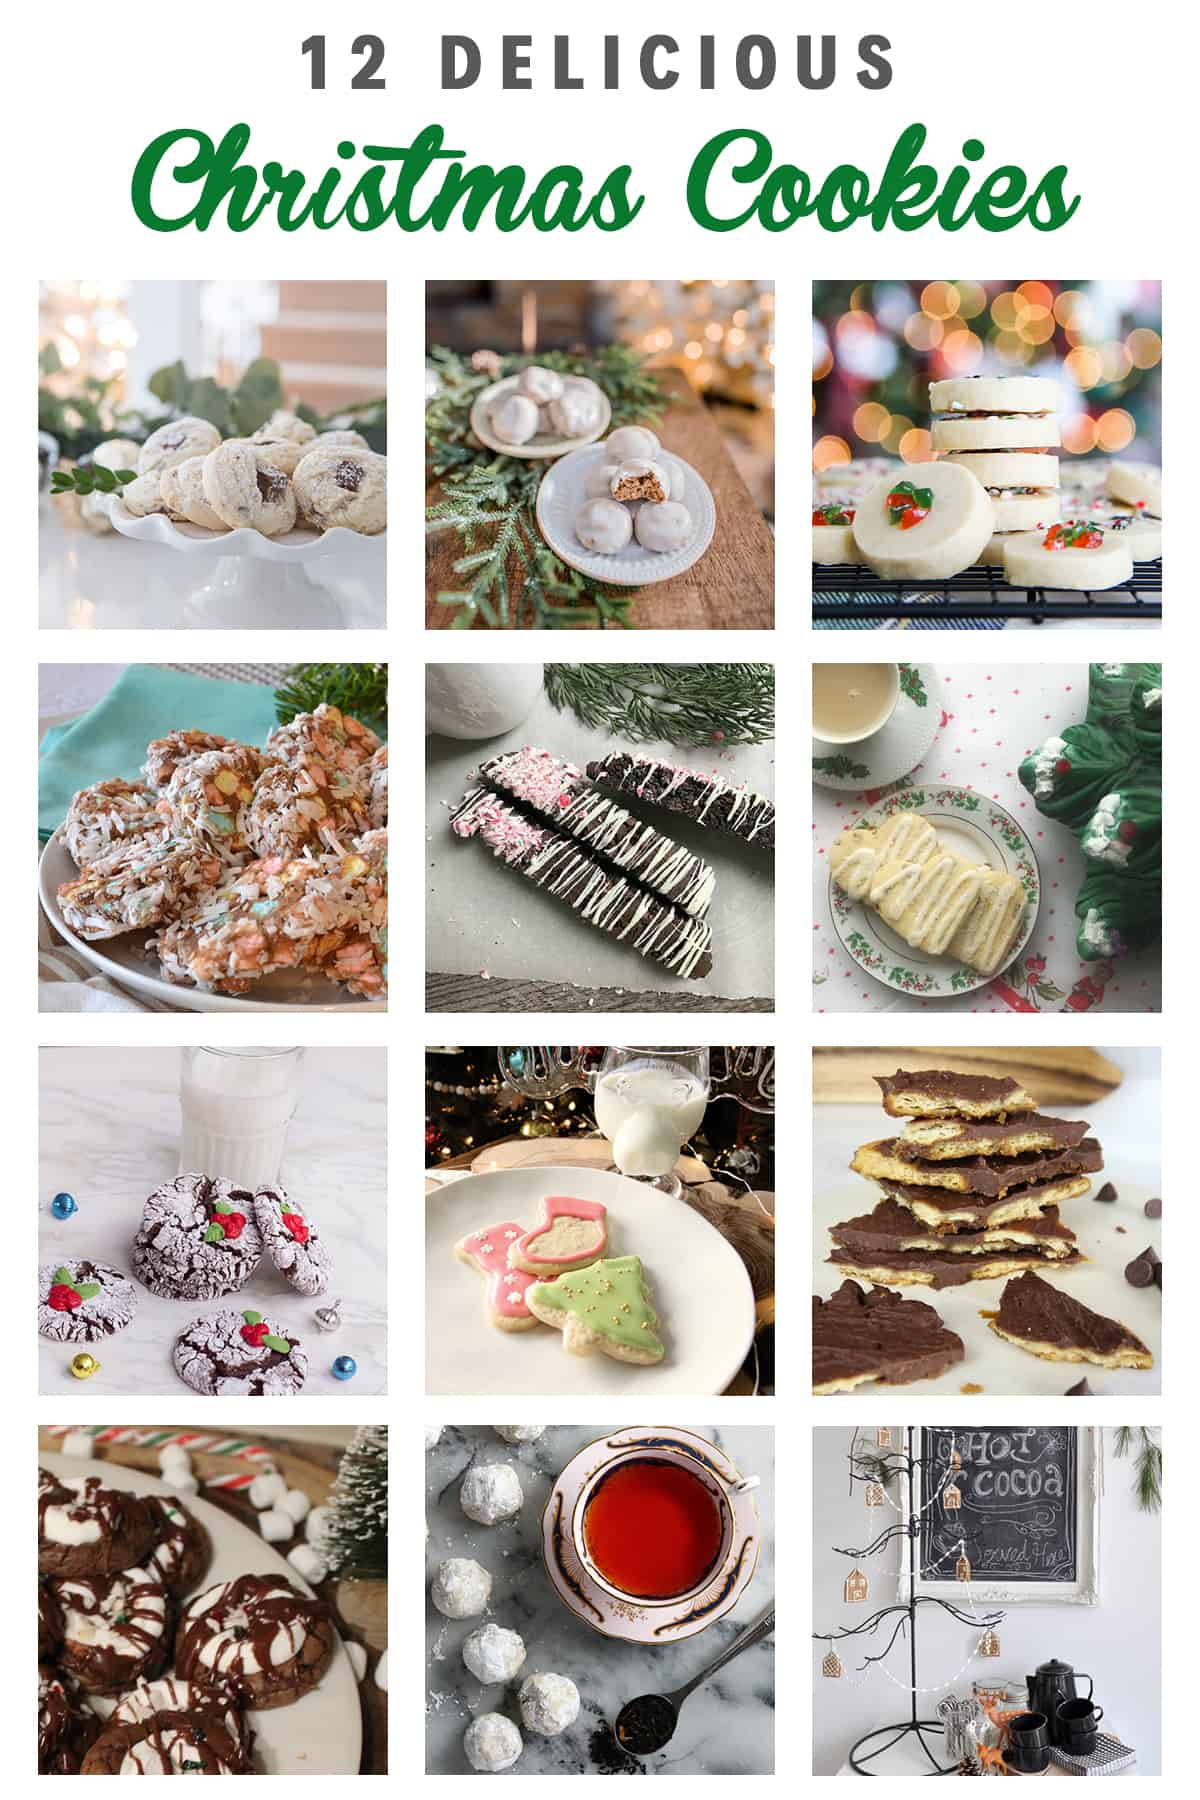 12 Delicious Christmas Cookies | Add a beautiful tasty treat to your Christmas party table with these recipes! #christmasrecipe #christmas #handmade